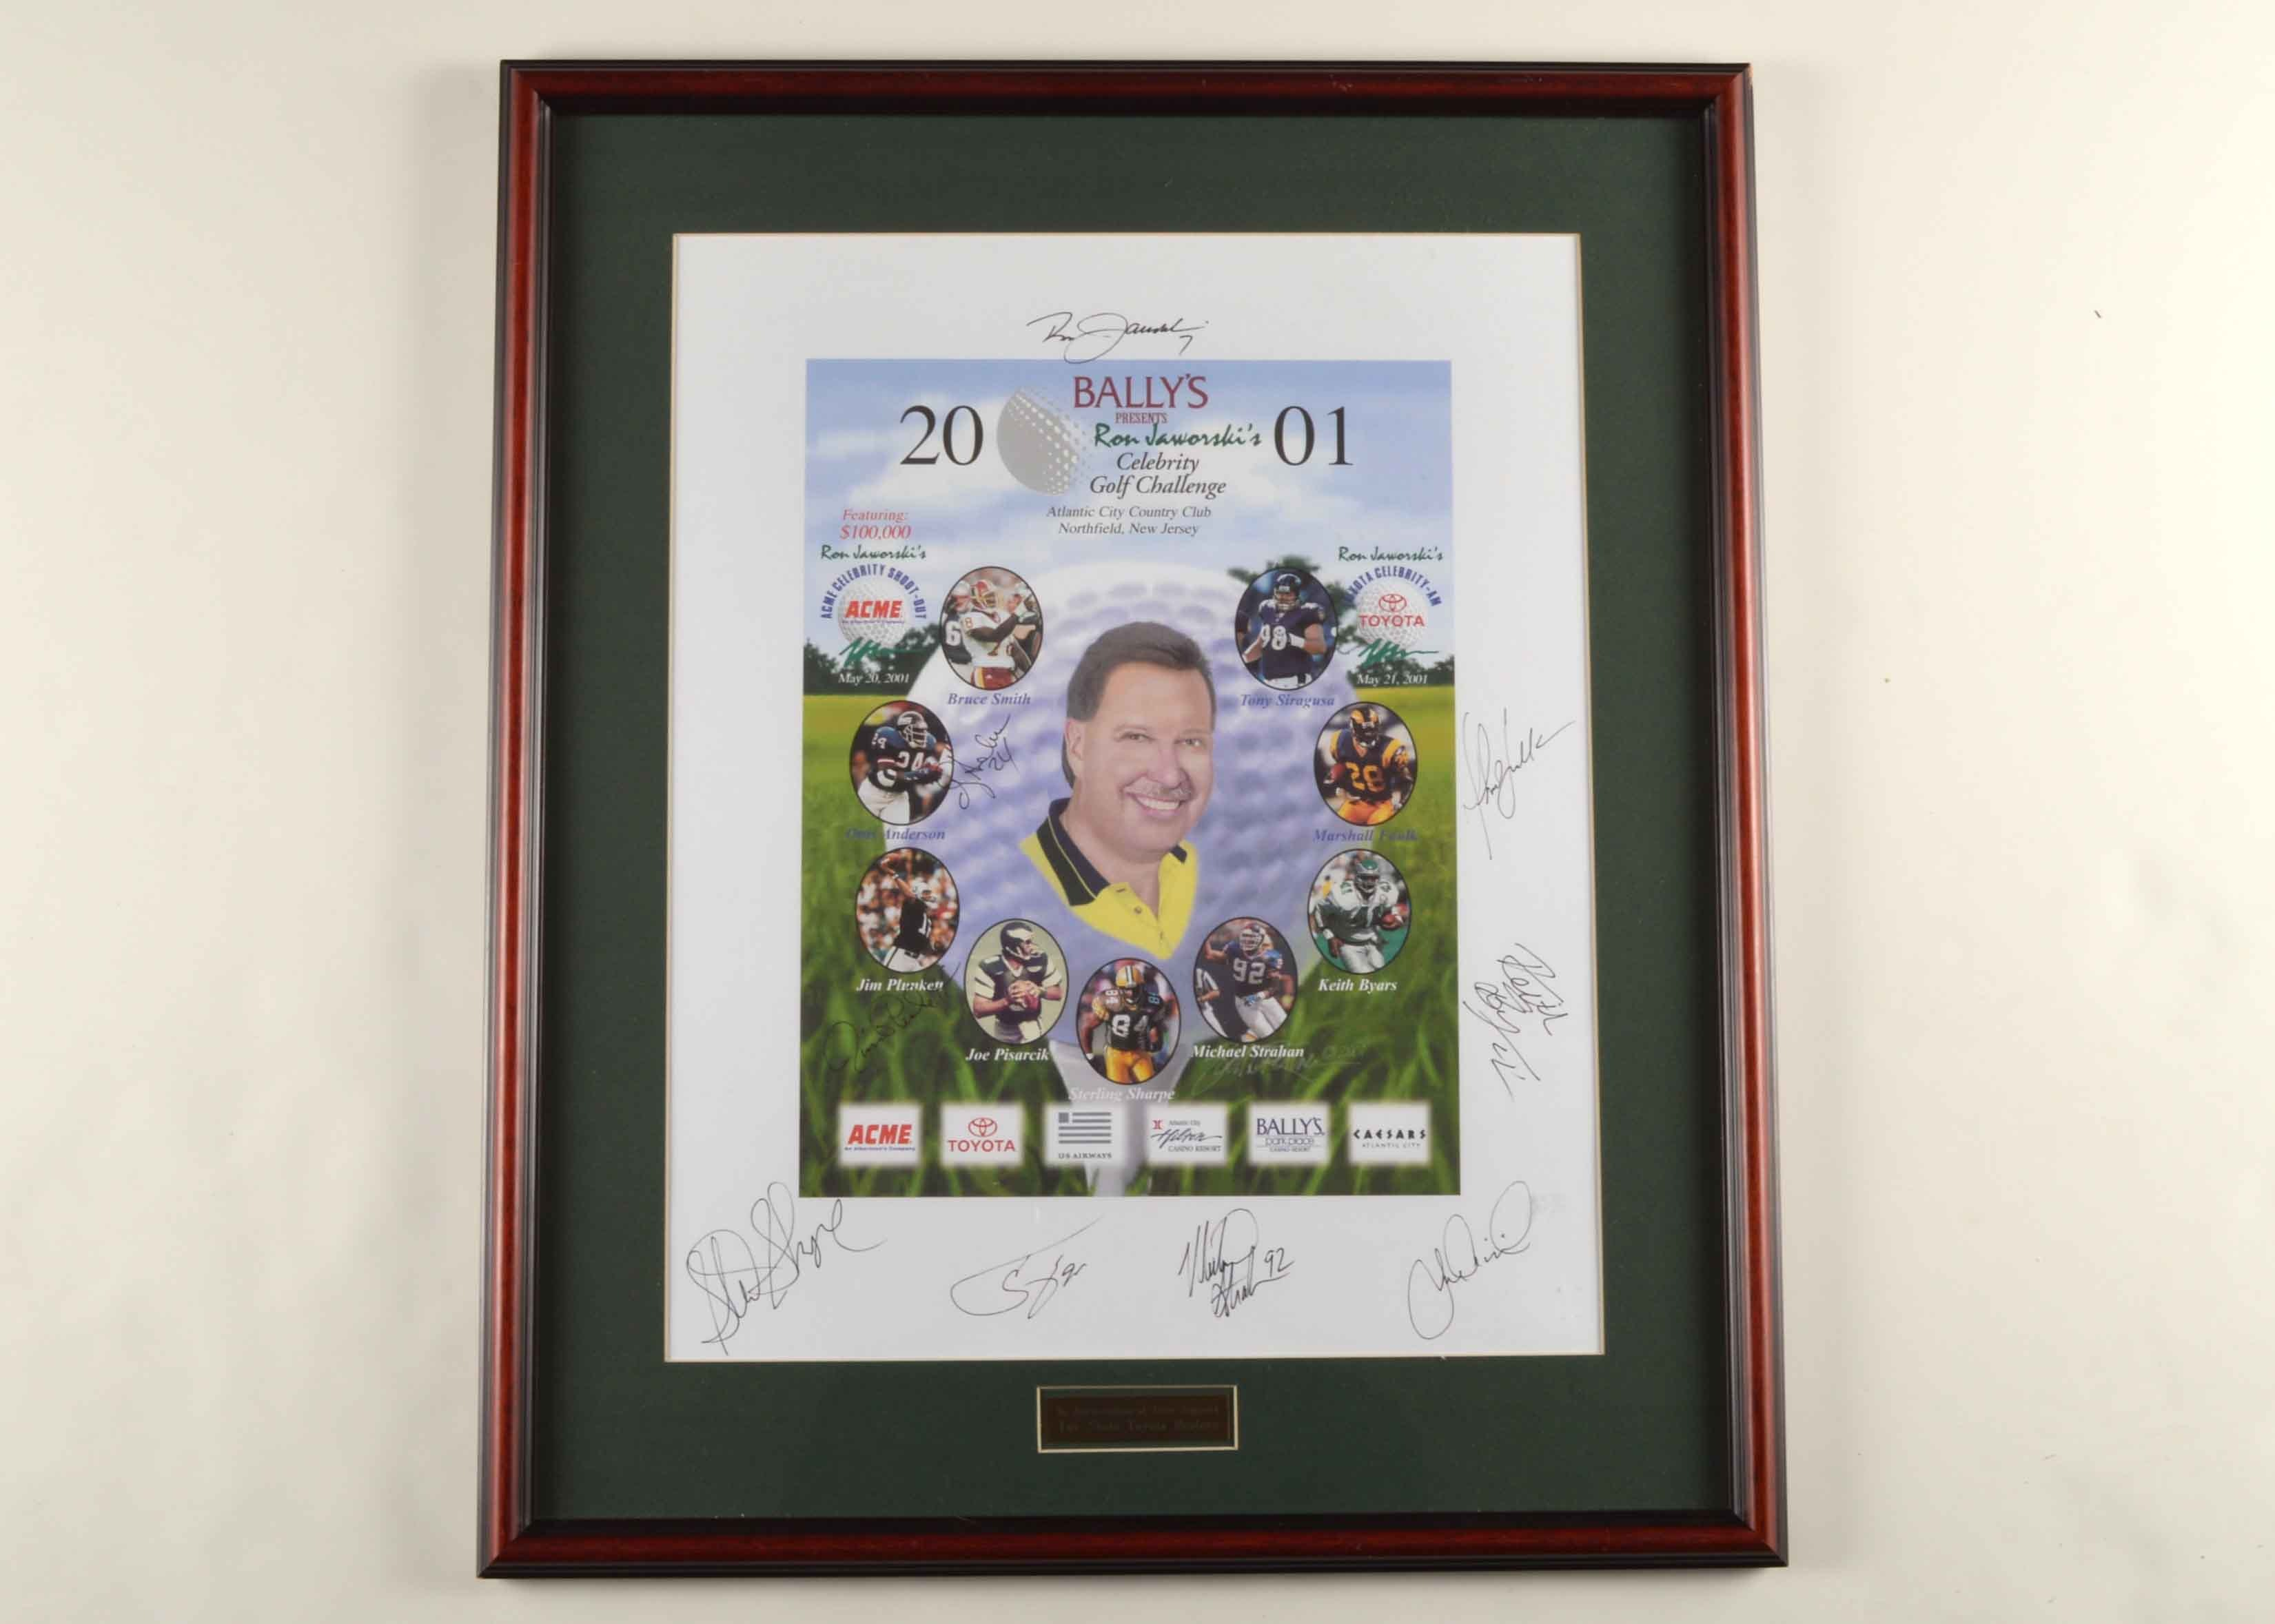 Framed Ron Jaworski Autographed Gold Tournament Poster Sharpe, Strahan,  Byars, Faulk ETC.